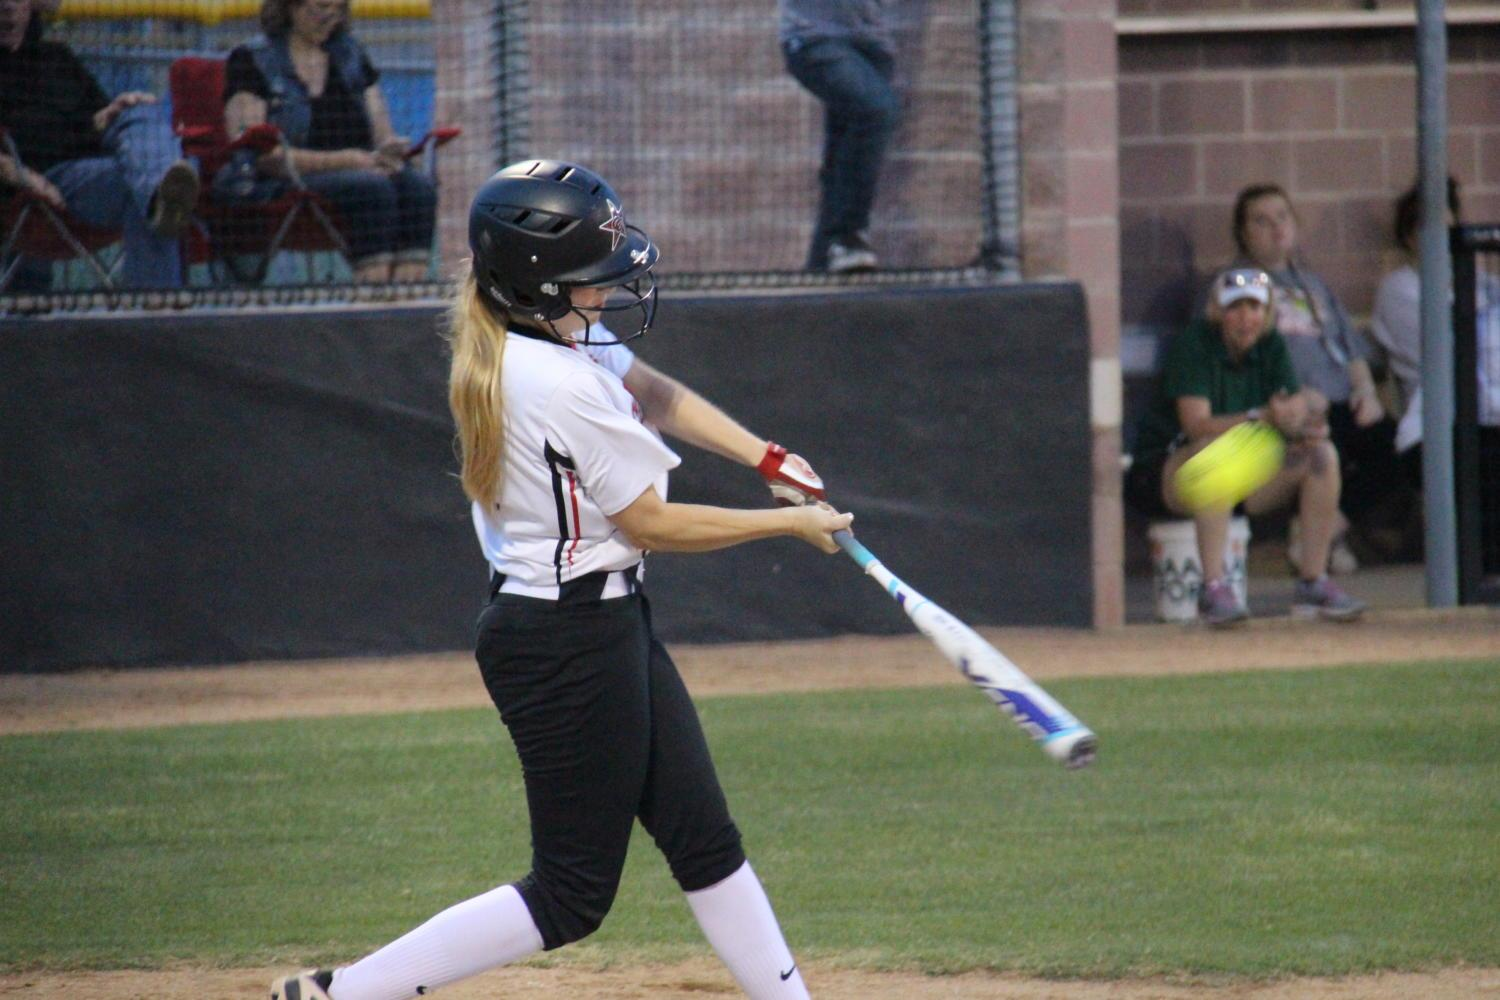 Coppell+senior+first+baseman+Alex+Denton+flies+out+to+deep+centerfield+in+the+second+inning+of+Coppell%E2%80%99s+18-1+win+over+Garland+Naaman+Forest+in+the+Class+6A+Region+II+bi-district+round+of+playoffs+at+the+Coppell+ISD+Softball%2FBaseball+Complex+on+Friday+night.+Denton+went+3-for-4+with+two+singles+and+two+RBIs.